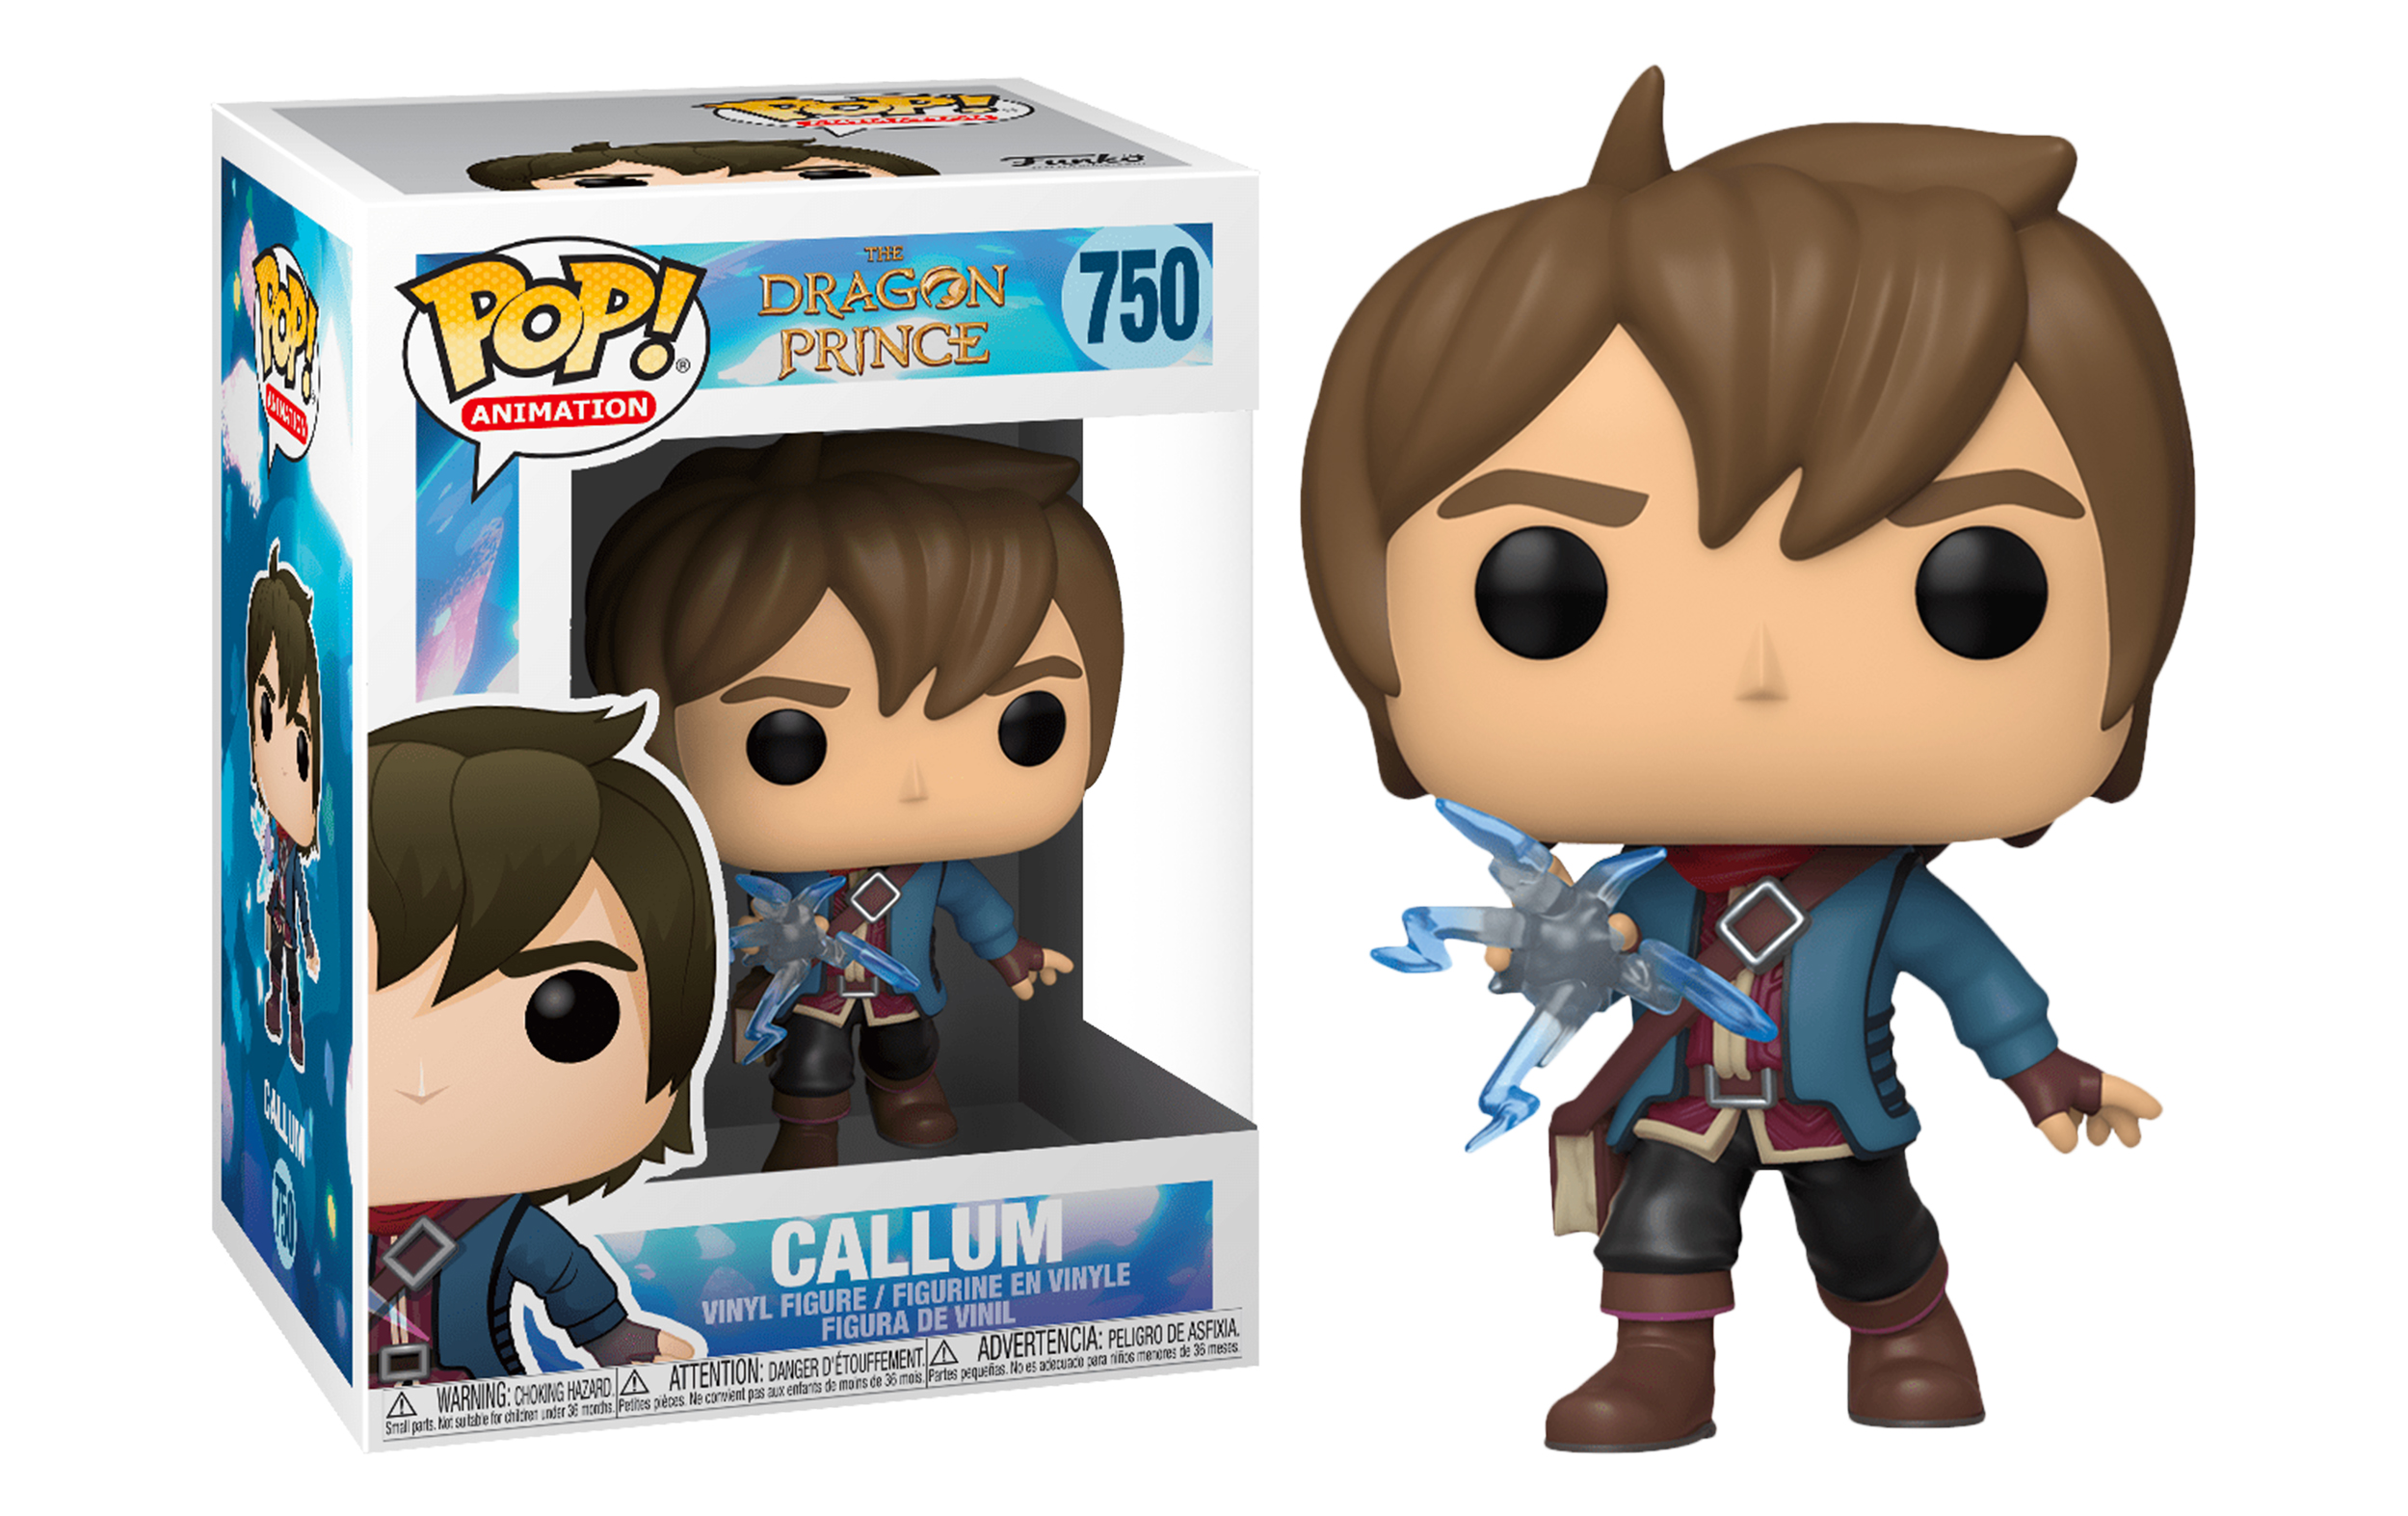 Dragon Prince Callum 750 Funko POP Vinyl Figure